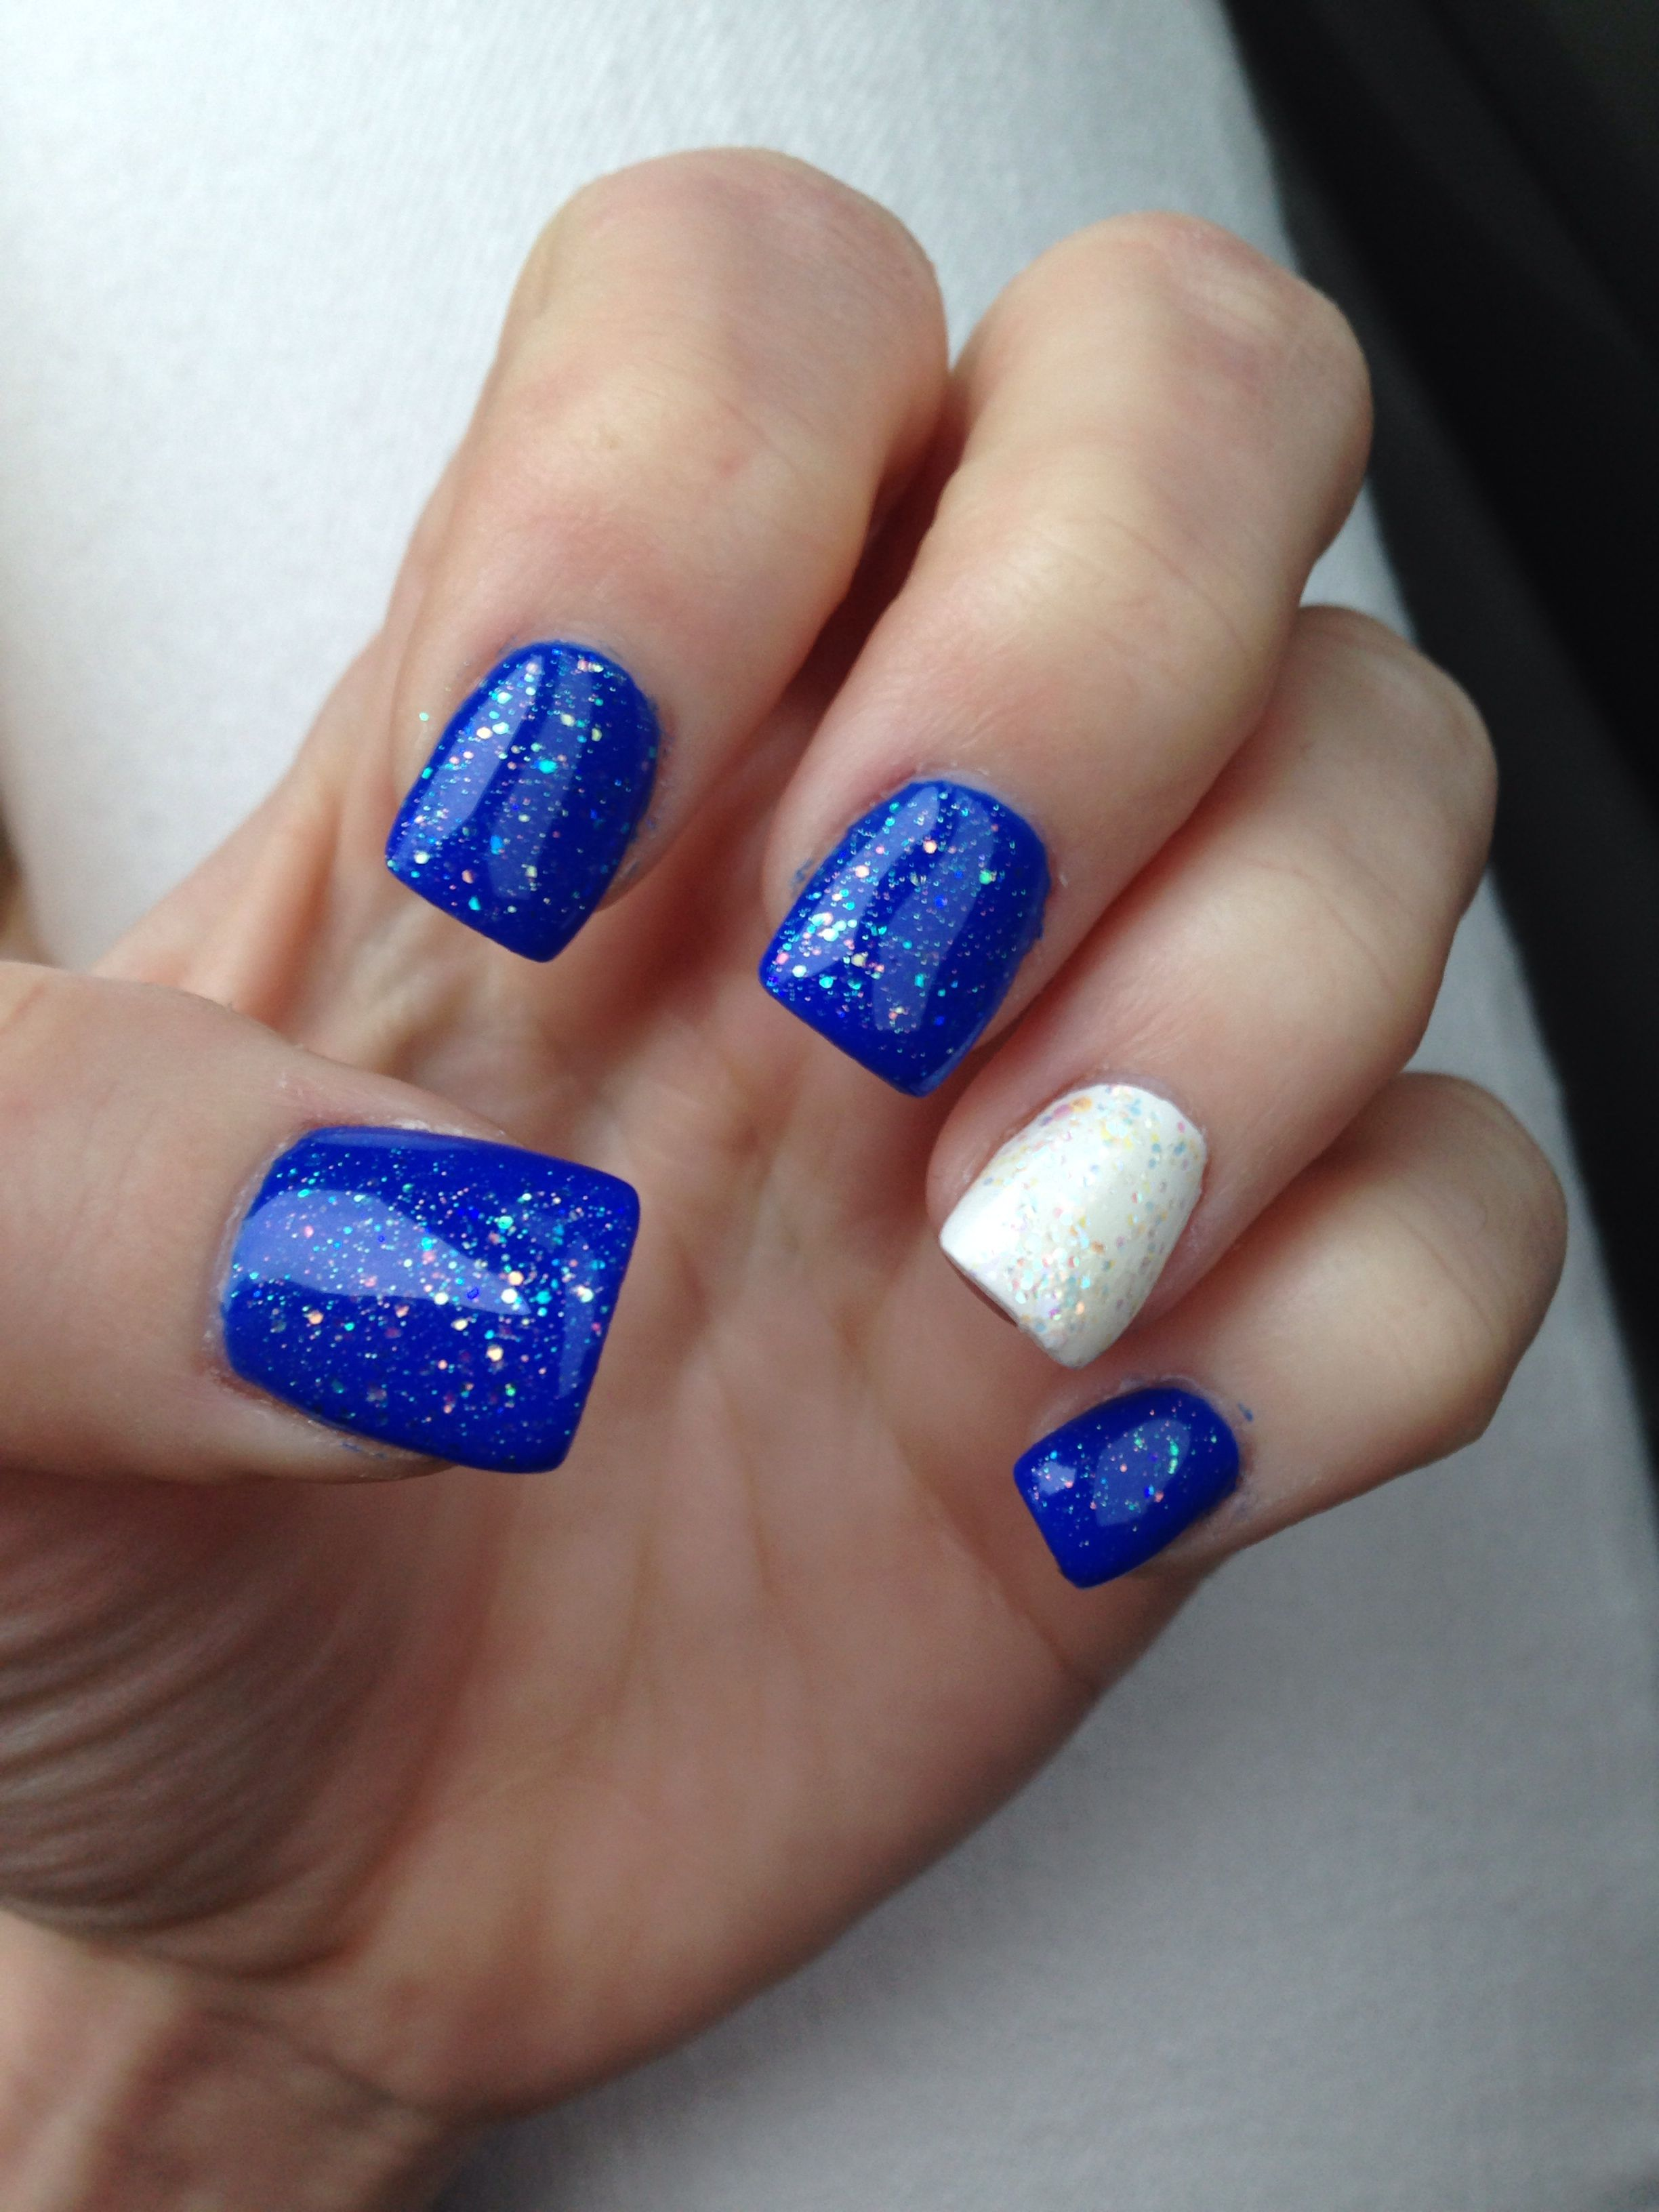 Nails. New Years Nails ) Sparkly blue and white New